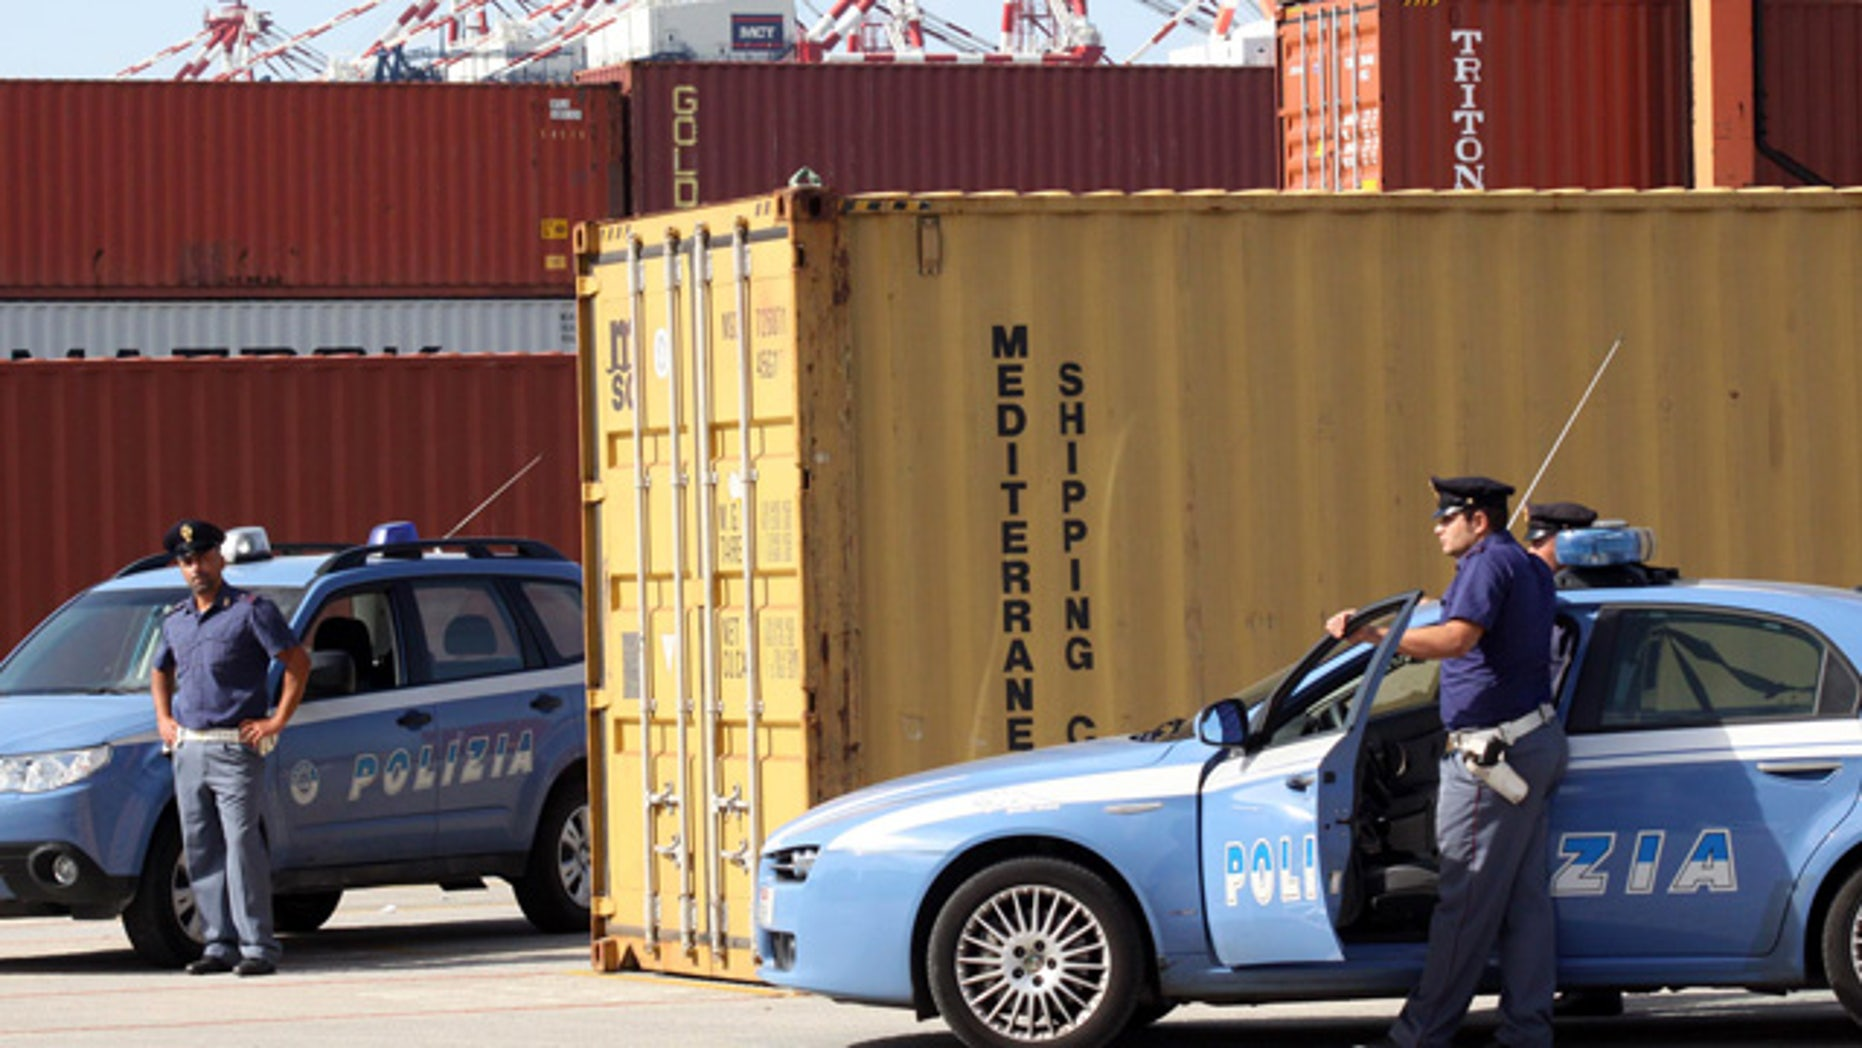 """Italian police stand guard by a confiscated container, in the port of Gioia Tauro, near Reggio Calabria, southern Italy, on Wednesday,  Sept. 22, 2010. Police officials say they have seized a """"huge'' shipment of powerful RDX explosives that may have originated in Iran. Reggio Calabria police chief Carmelo Casabona told an Italian private television news that the amount was too large to be destined only to the Calabrian mob. (AP Photo/Adriana Sapone)"""